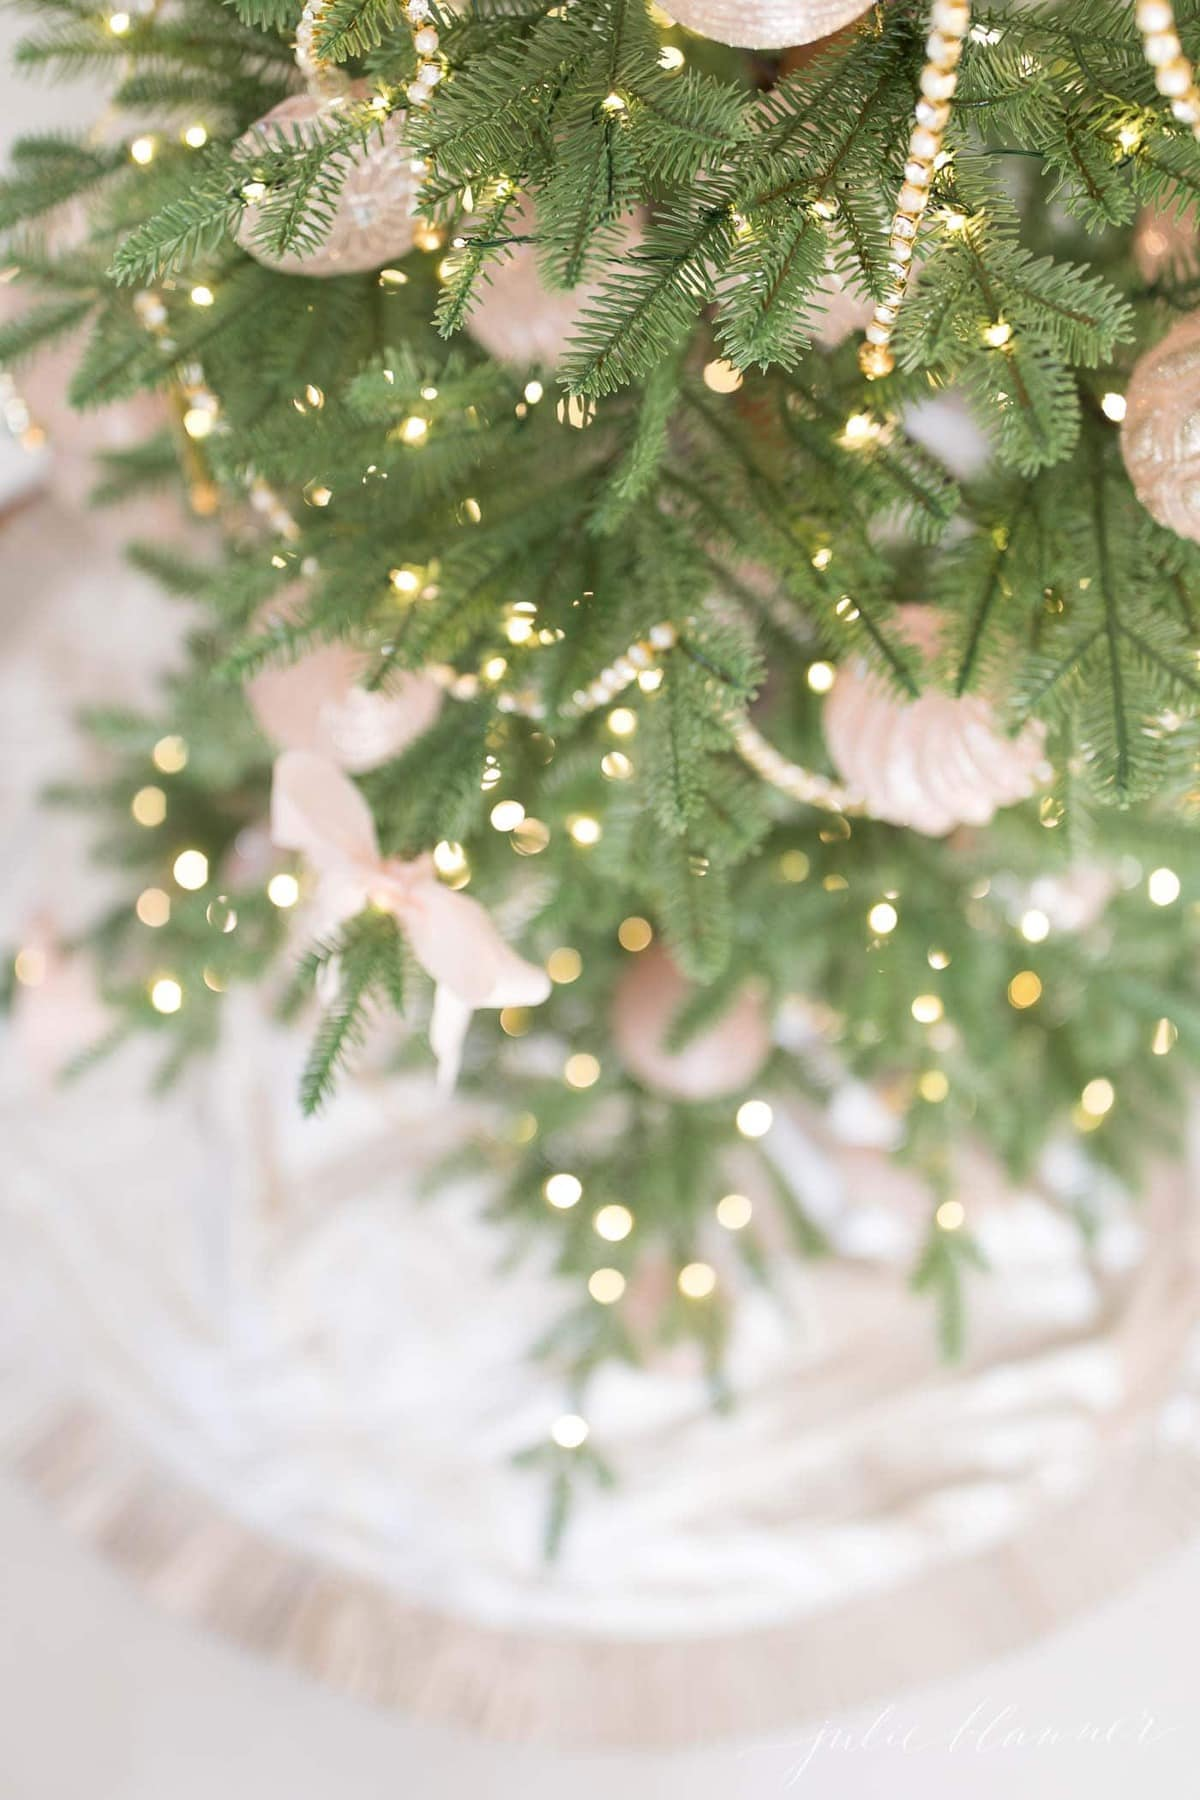 A sparse artificial christmas tree decorated in pink.